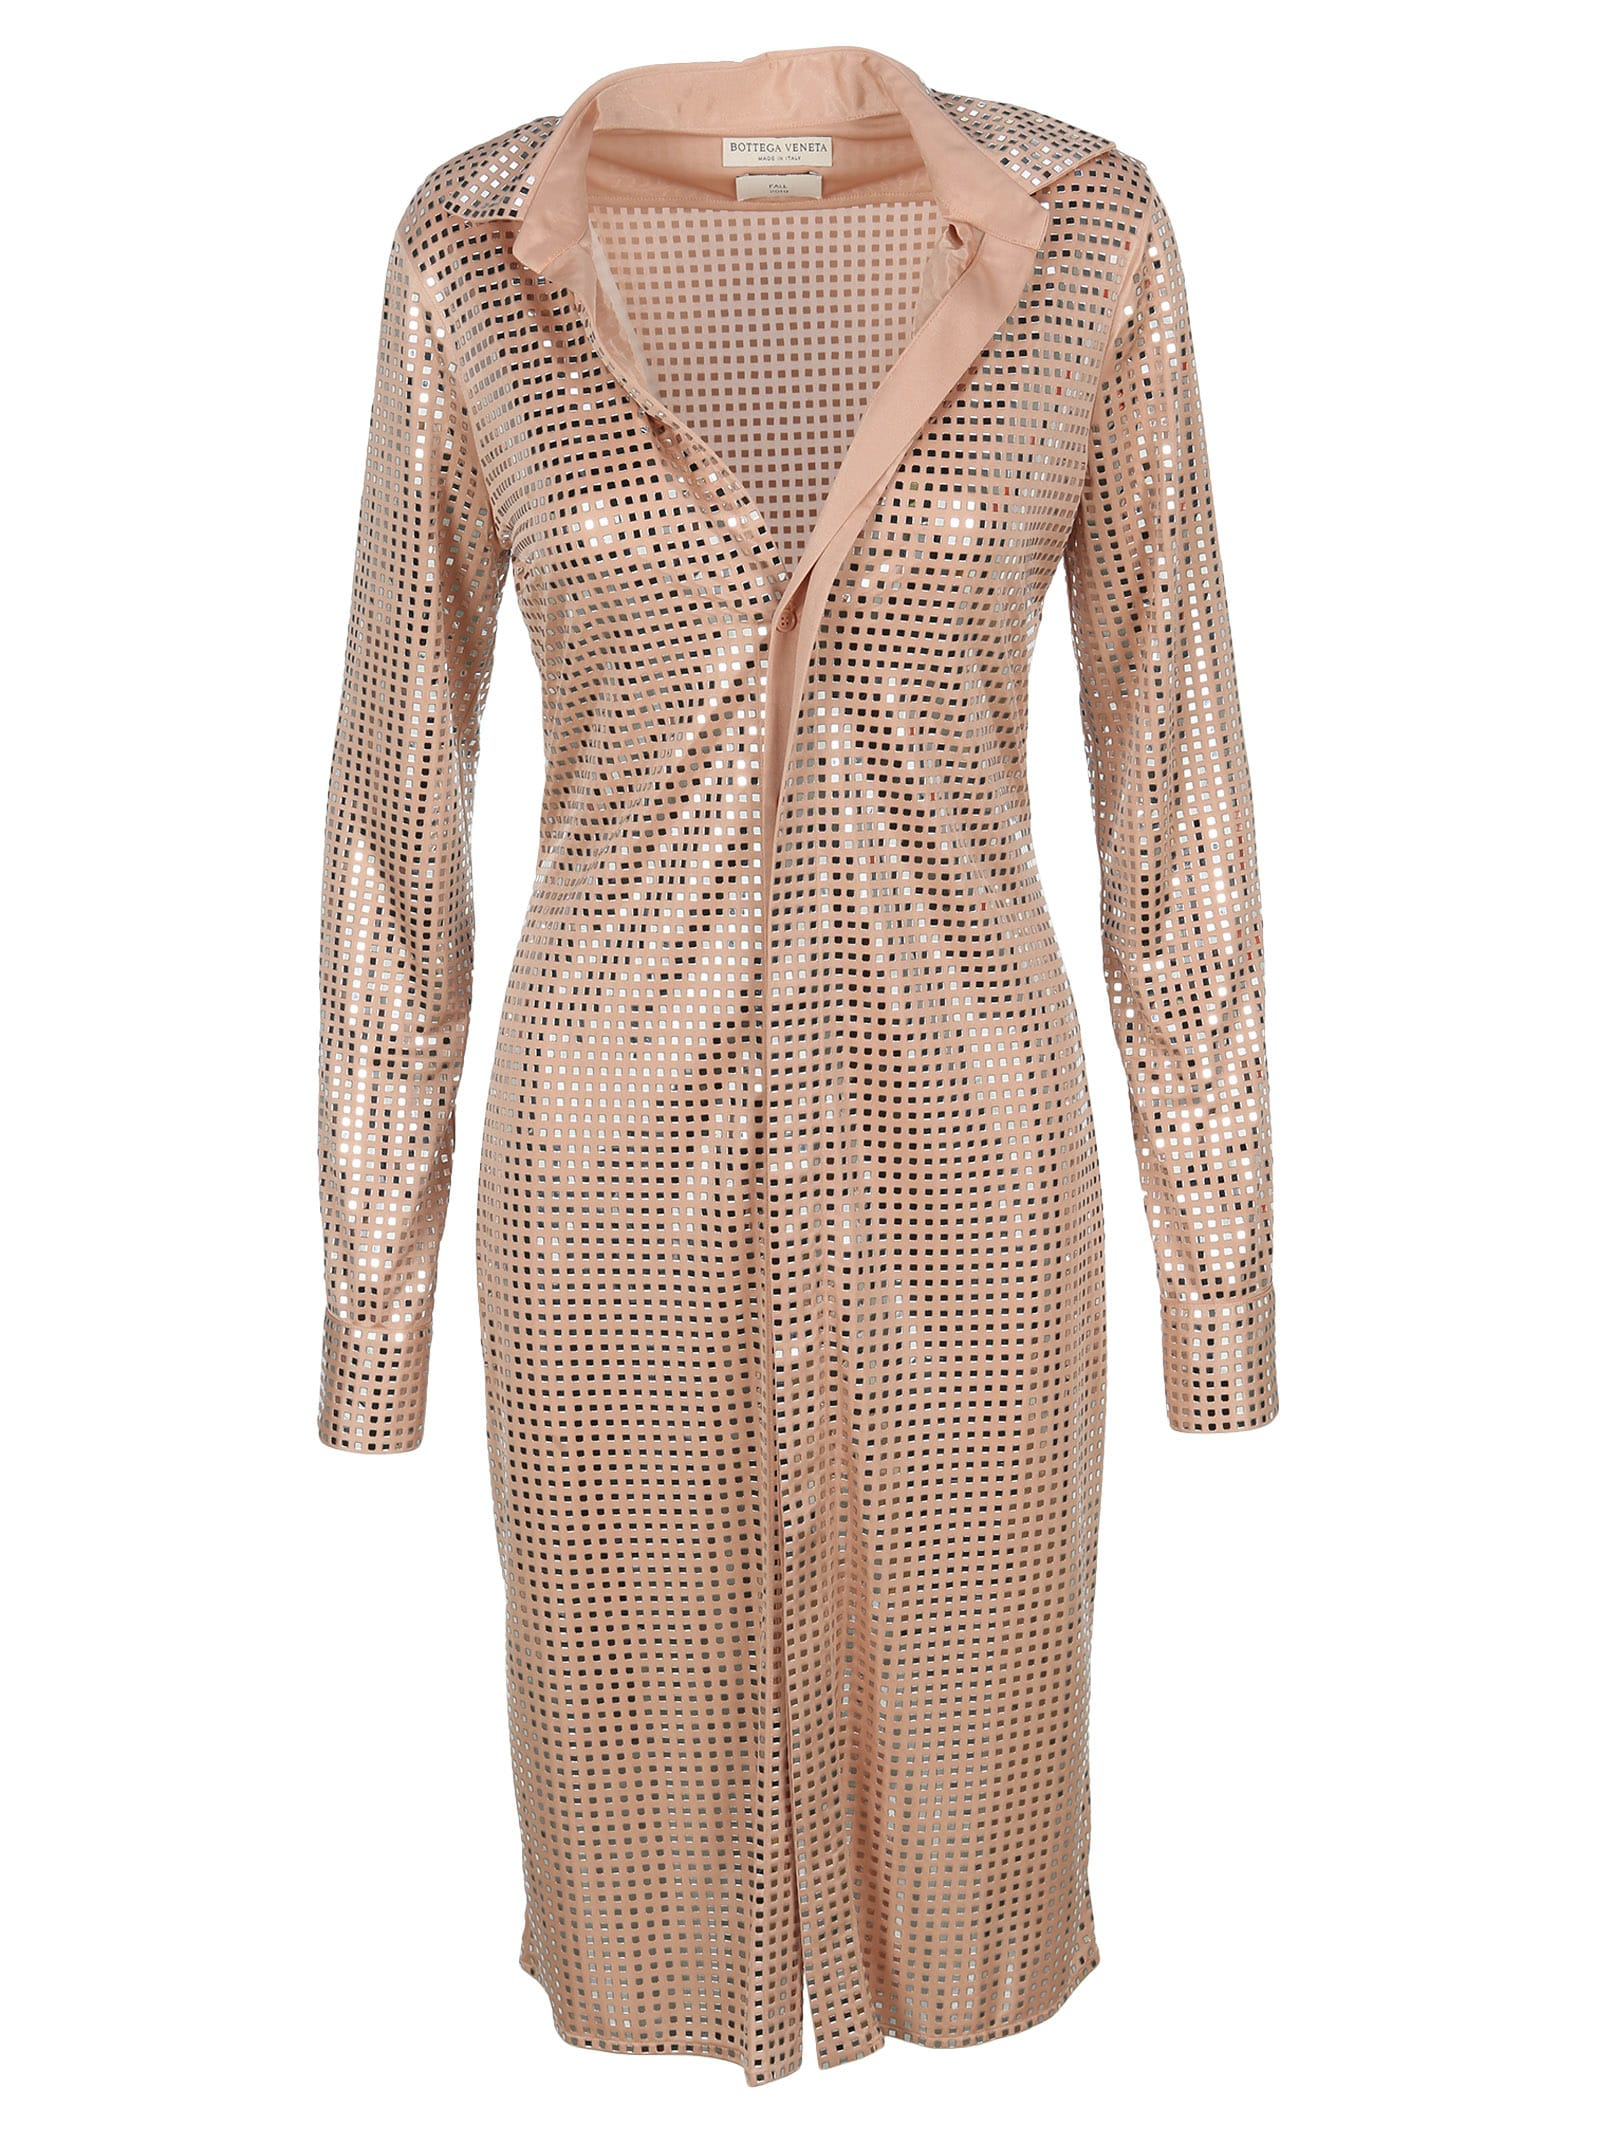 Bottega Veneta Embellished Dress